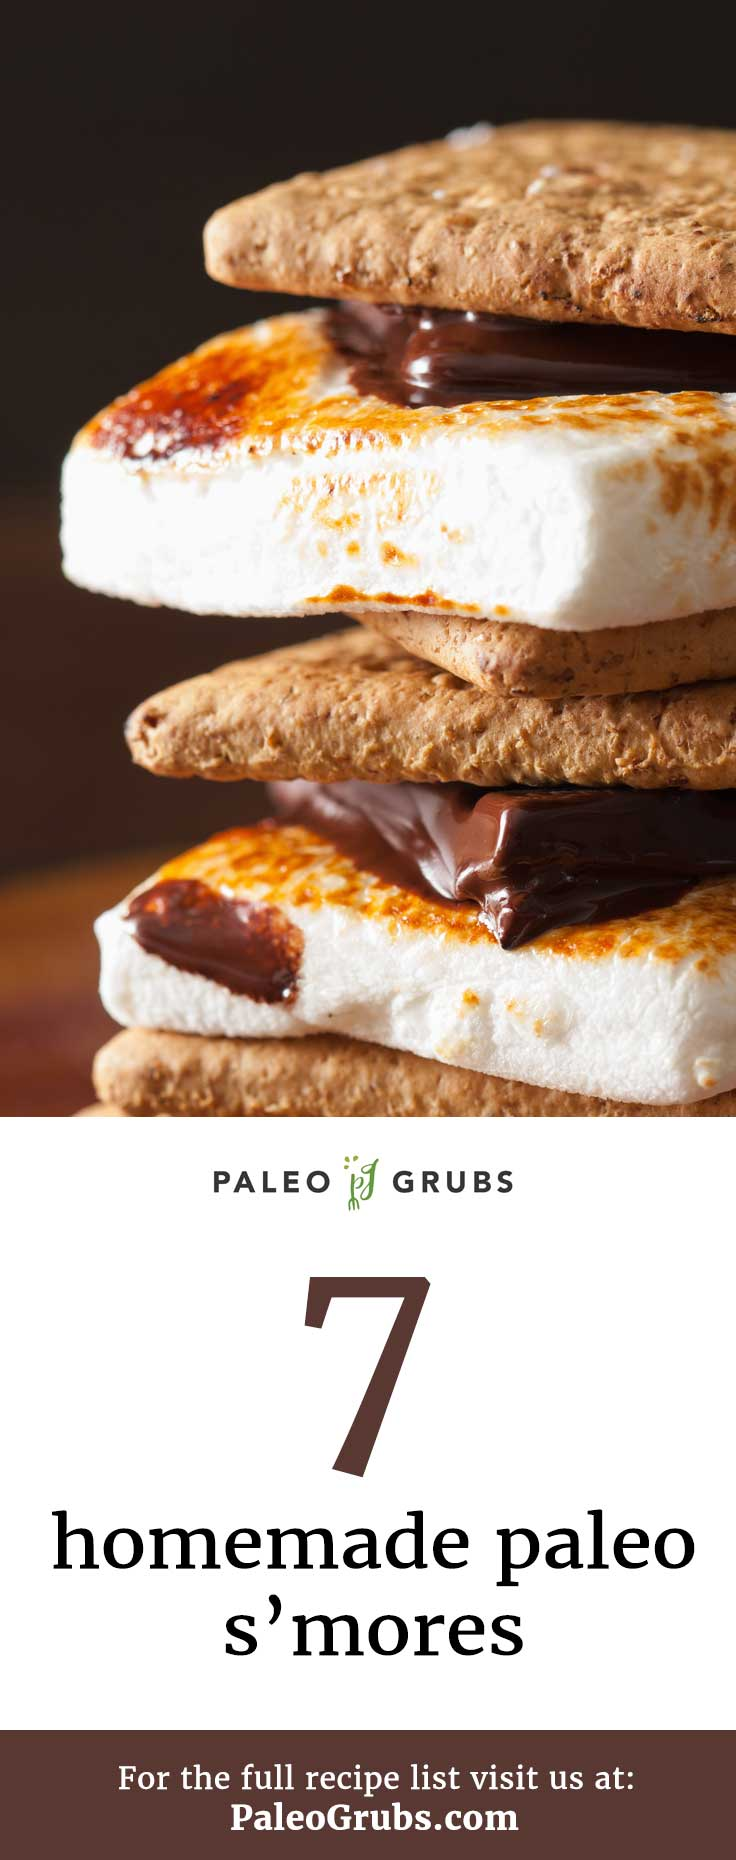 Ooey, gooey, melty s'more goodness.